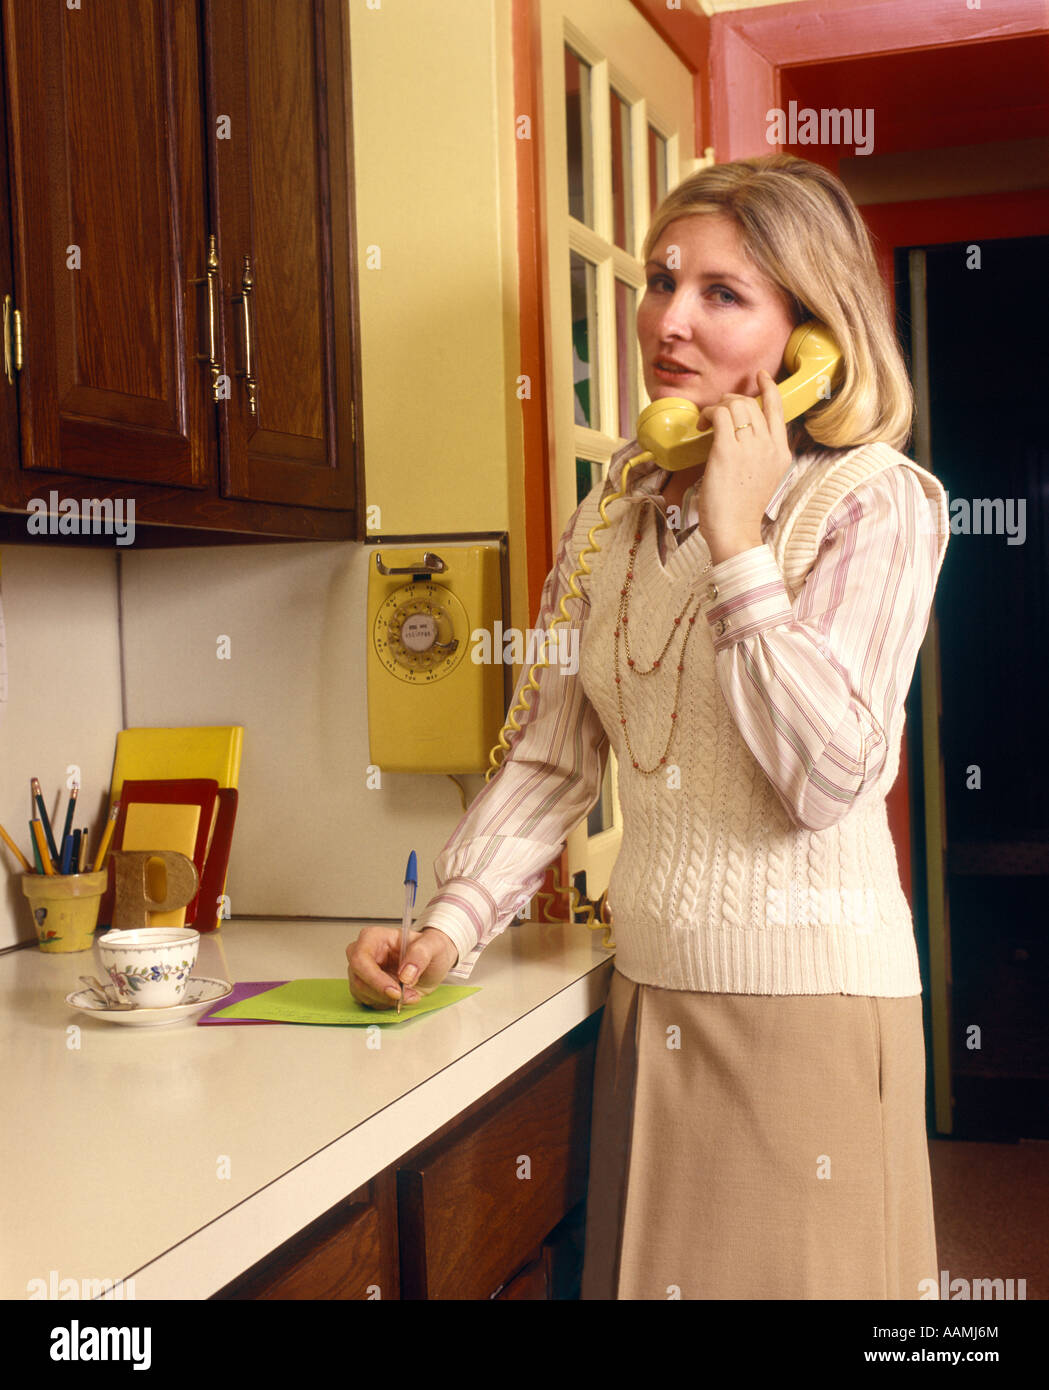 1970 1970s WOMAN HOUSEWIFE TALKING ON YELLOW WALL PHONE IN KITCHEN NOTE PAD  ON COUNTER WRITING